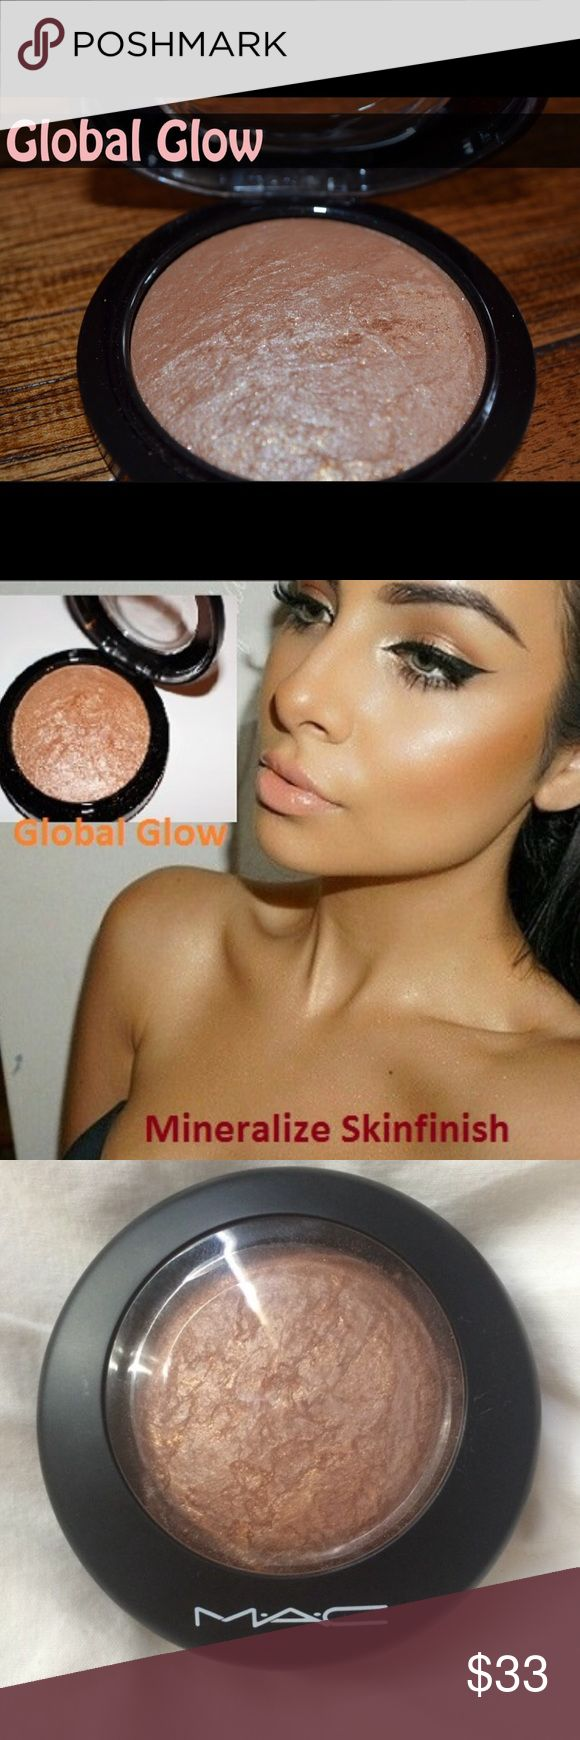 BUYER BEWARE!!!!!!!!!!!!!!!!!!!!!! @Nashimaiglesias is selling FAKE/KNOCK OFF Products! This is Not Safe and can actually be HARMFUL to your skin! Please be careful. MAC Cosmetics Makeup Luminizer